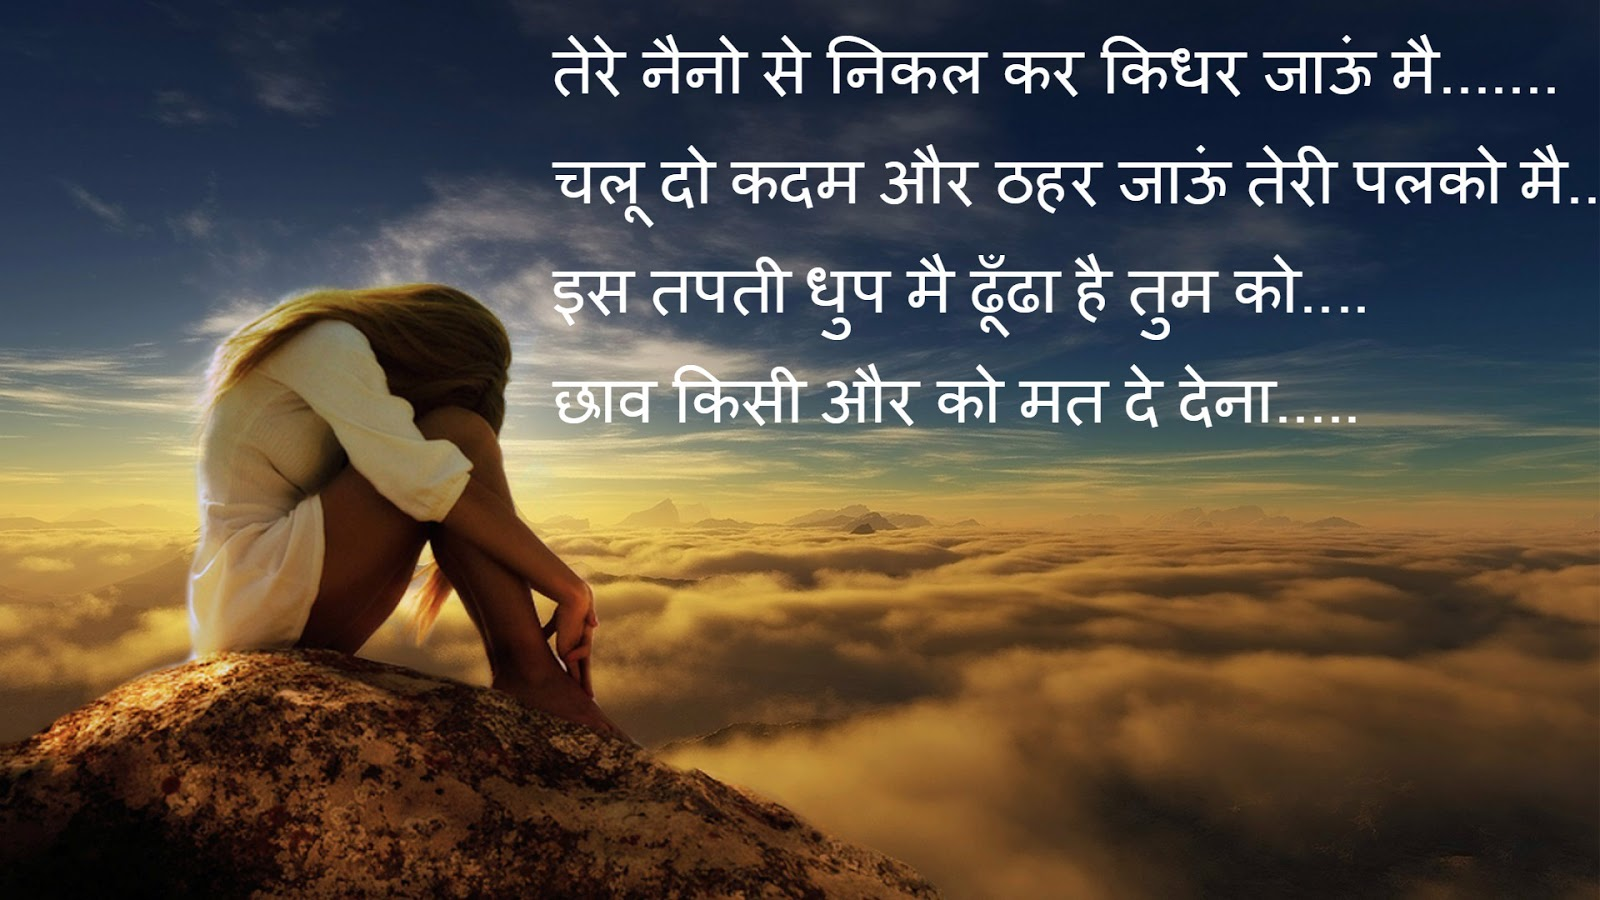 download love shayari wallpapers - photo #35